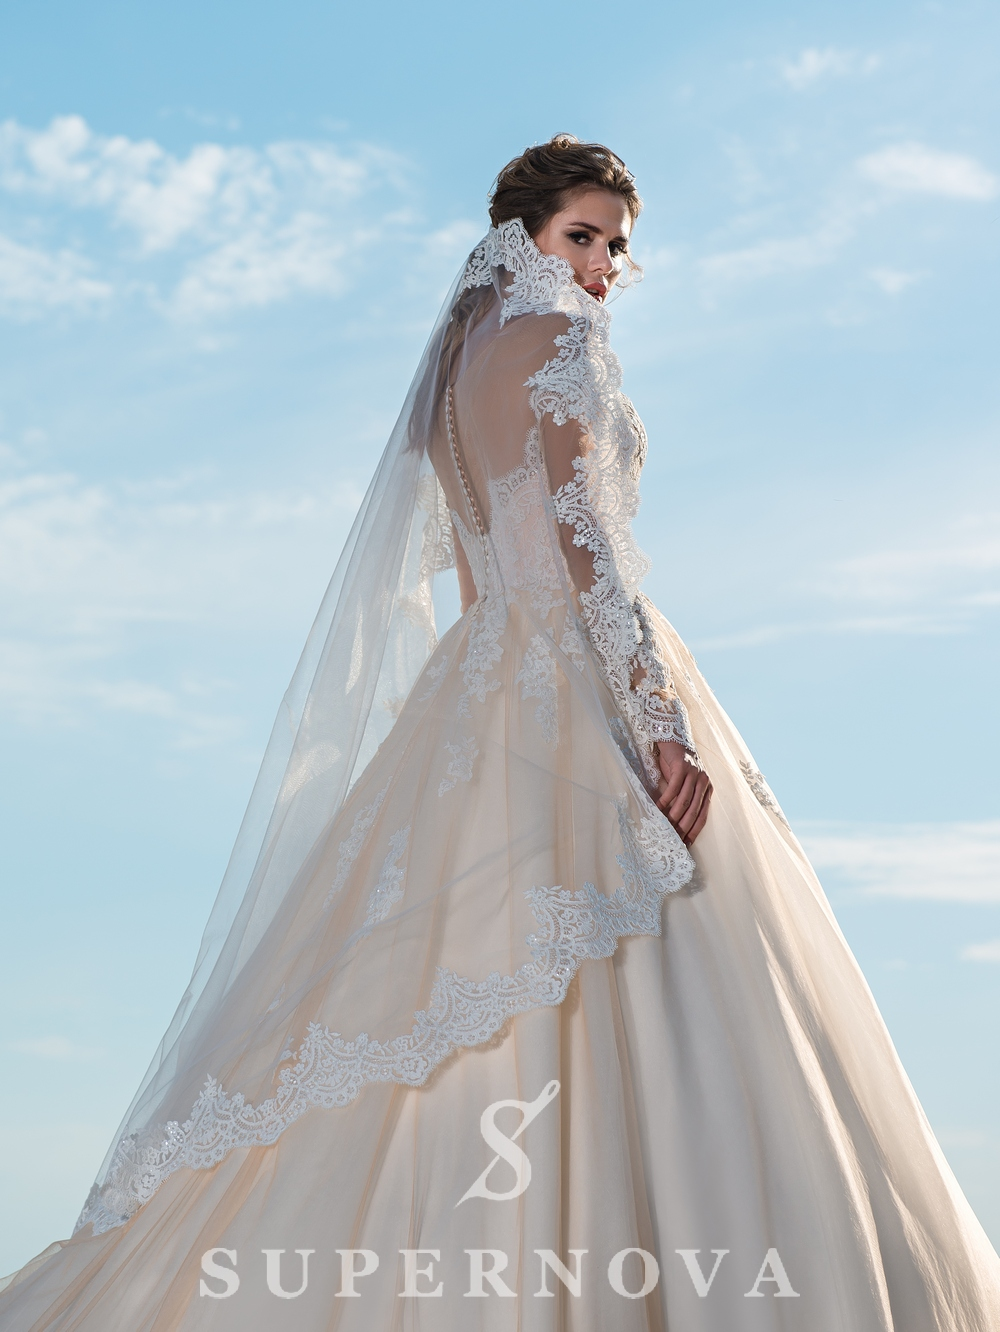 Similarly We Chose The Most Suitable And Trendy Types Of Veils That Would Perfectly Suit Modern Dresses